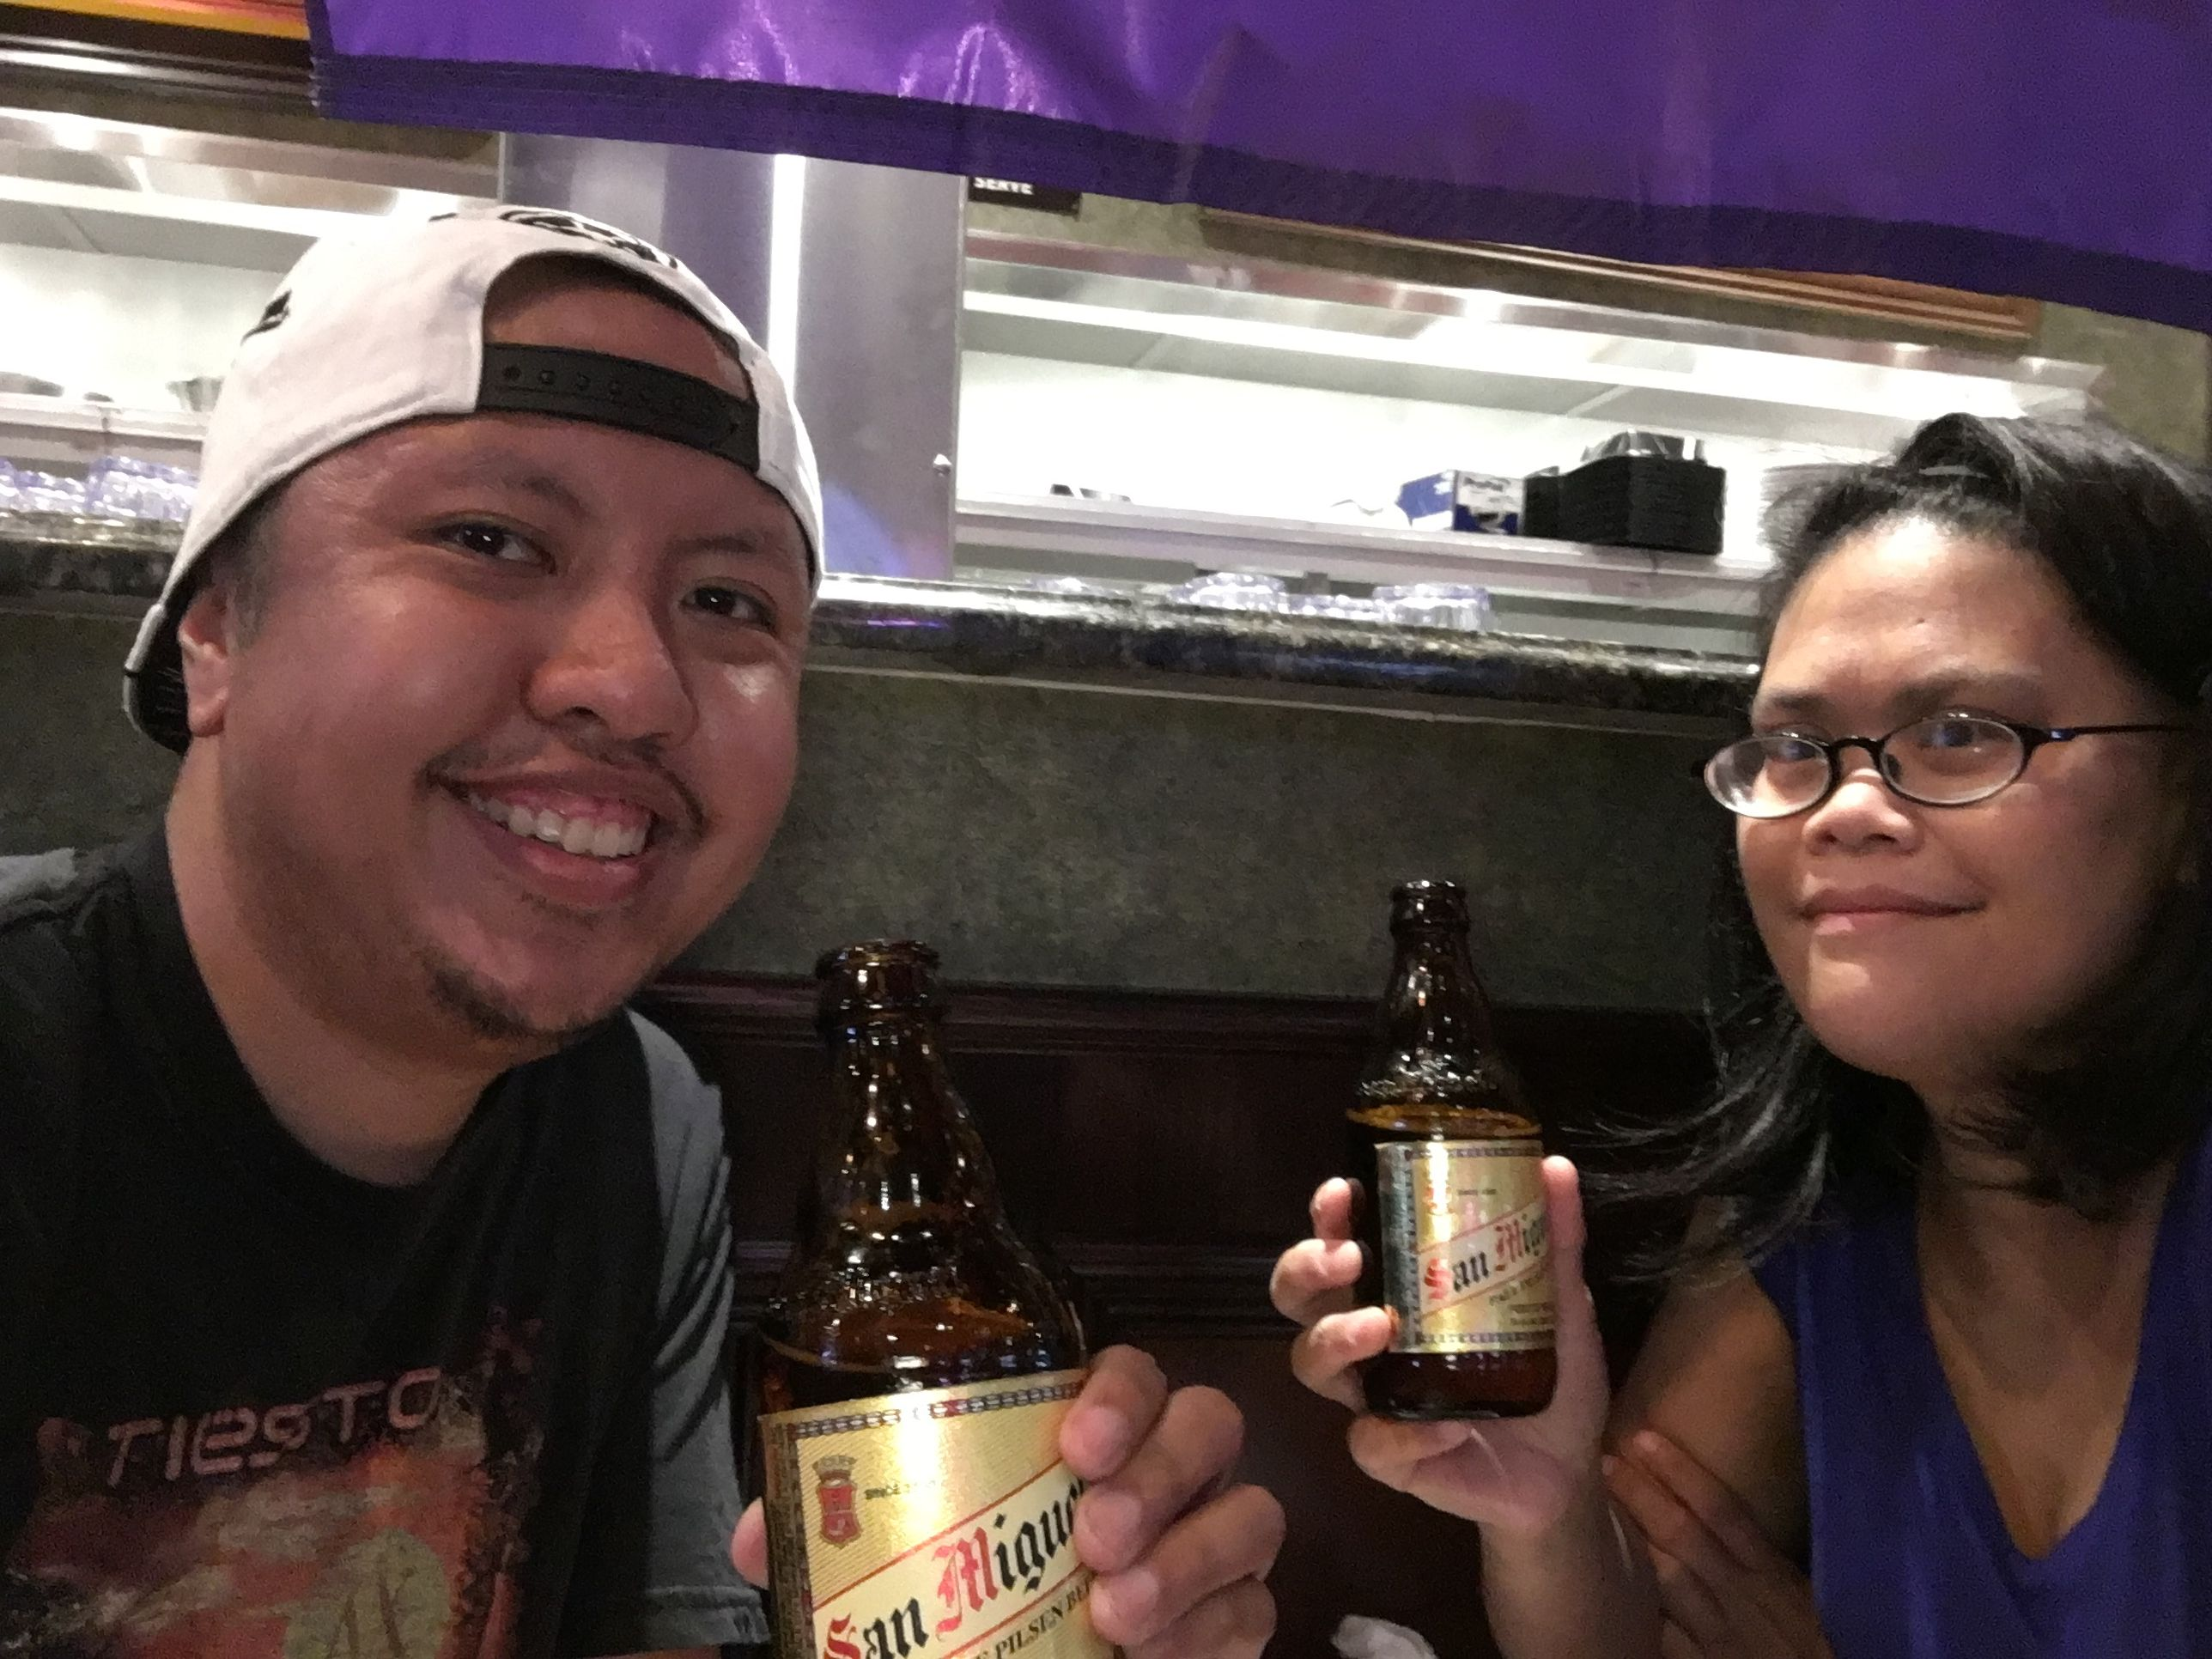 San Miguel and UFC 199 Saturdate at tilted Kilt